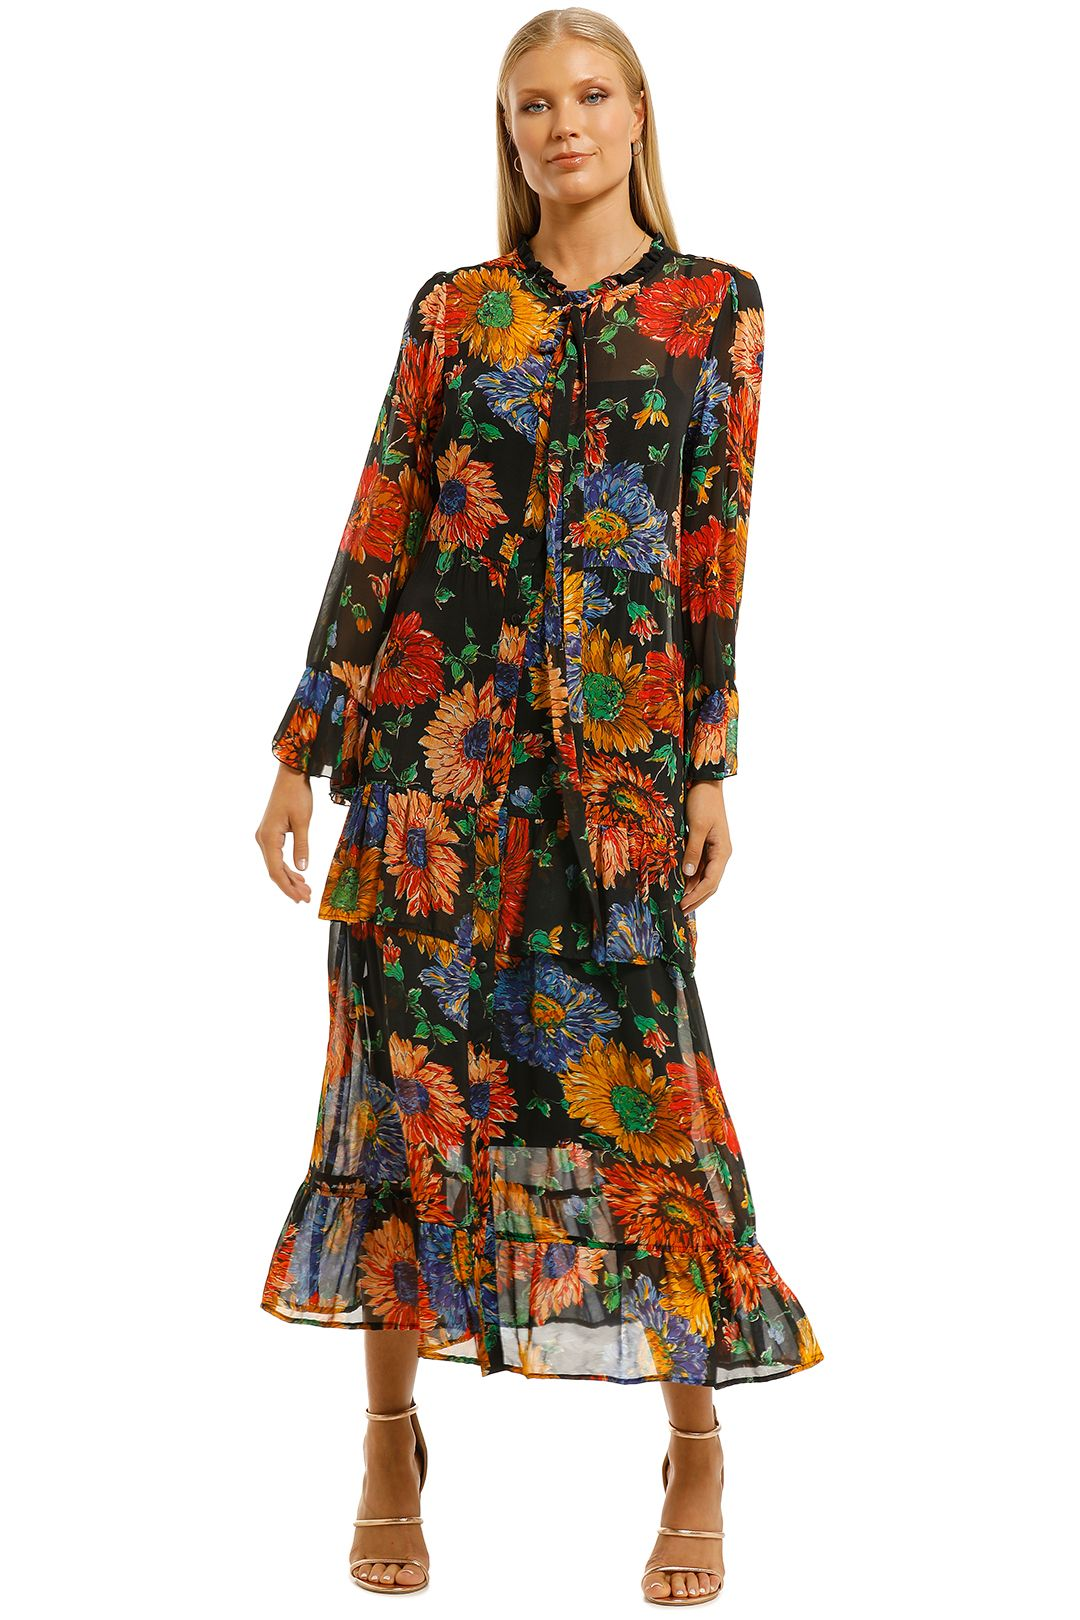 Curate-by-Trelise-Cooper-Long-With-The-Wind-Dress-Flower-Front